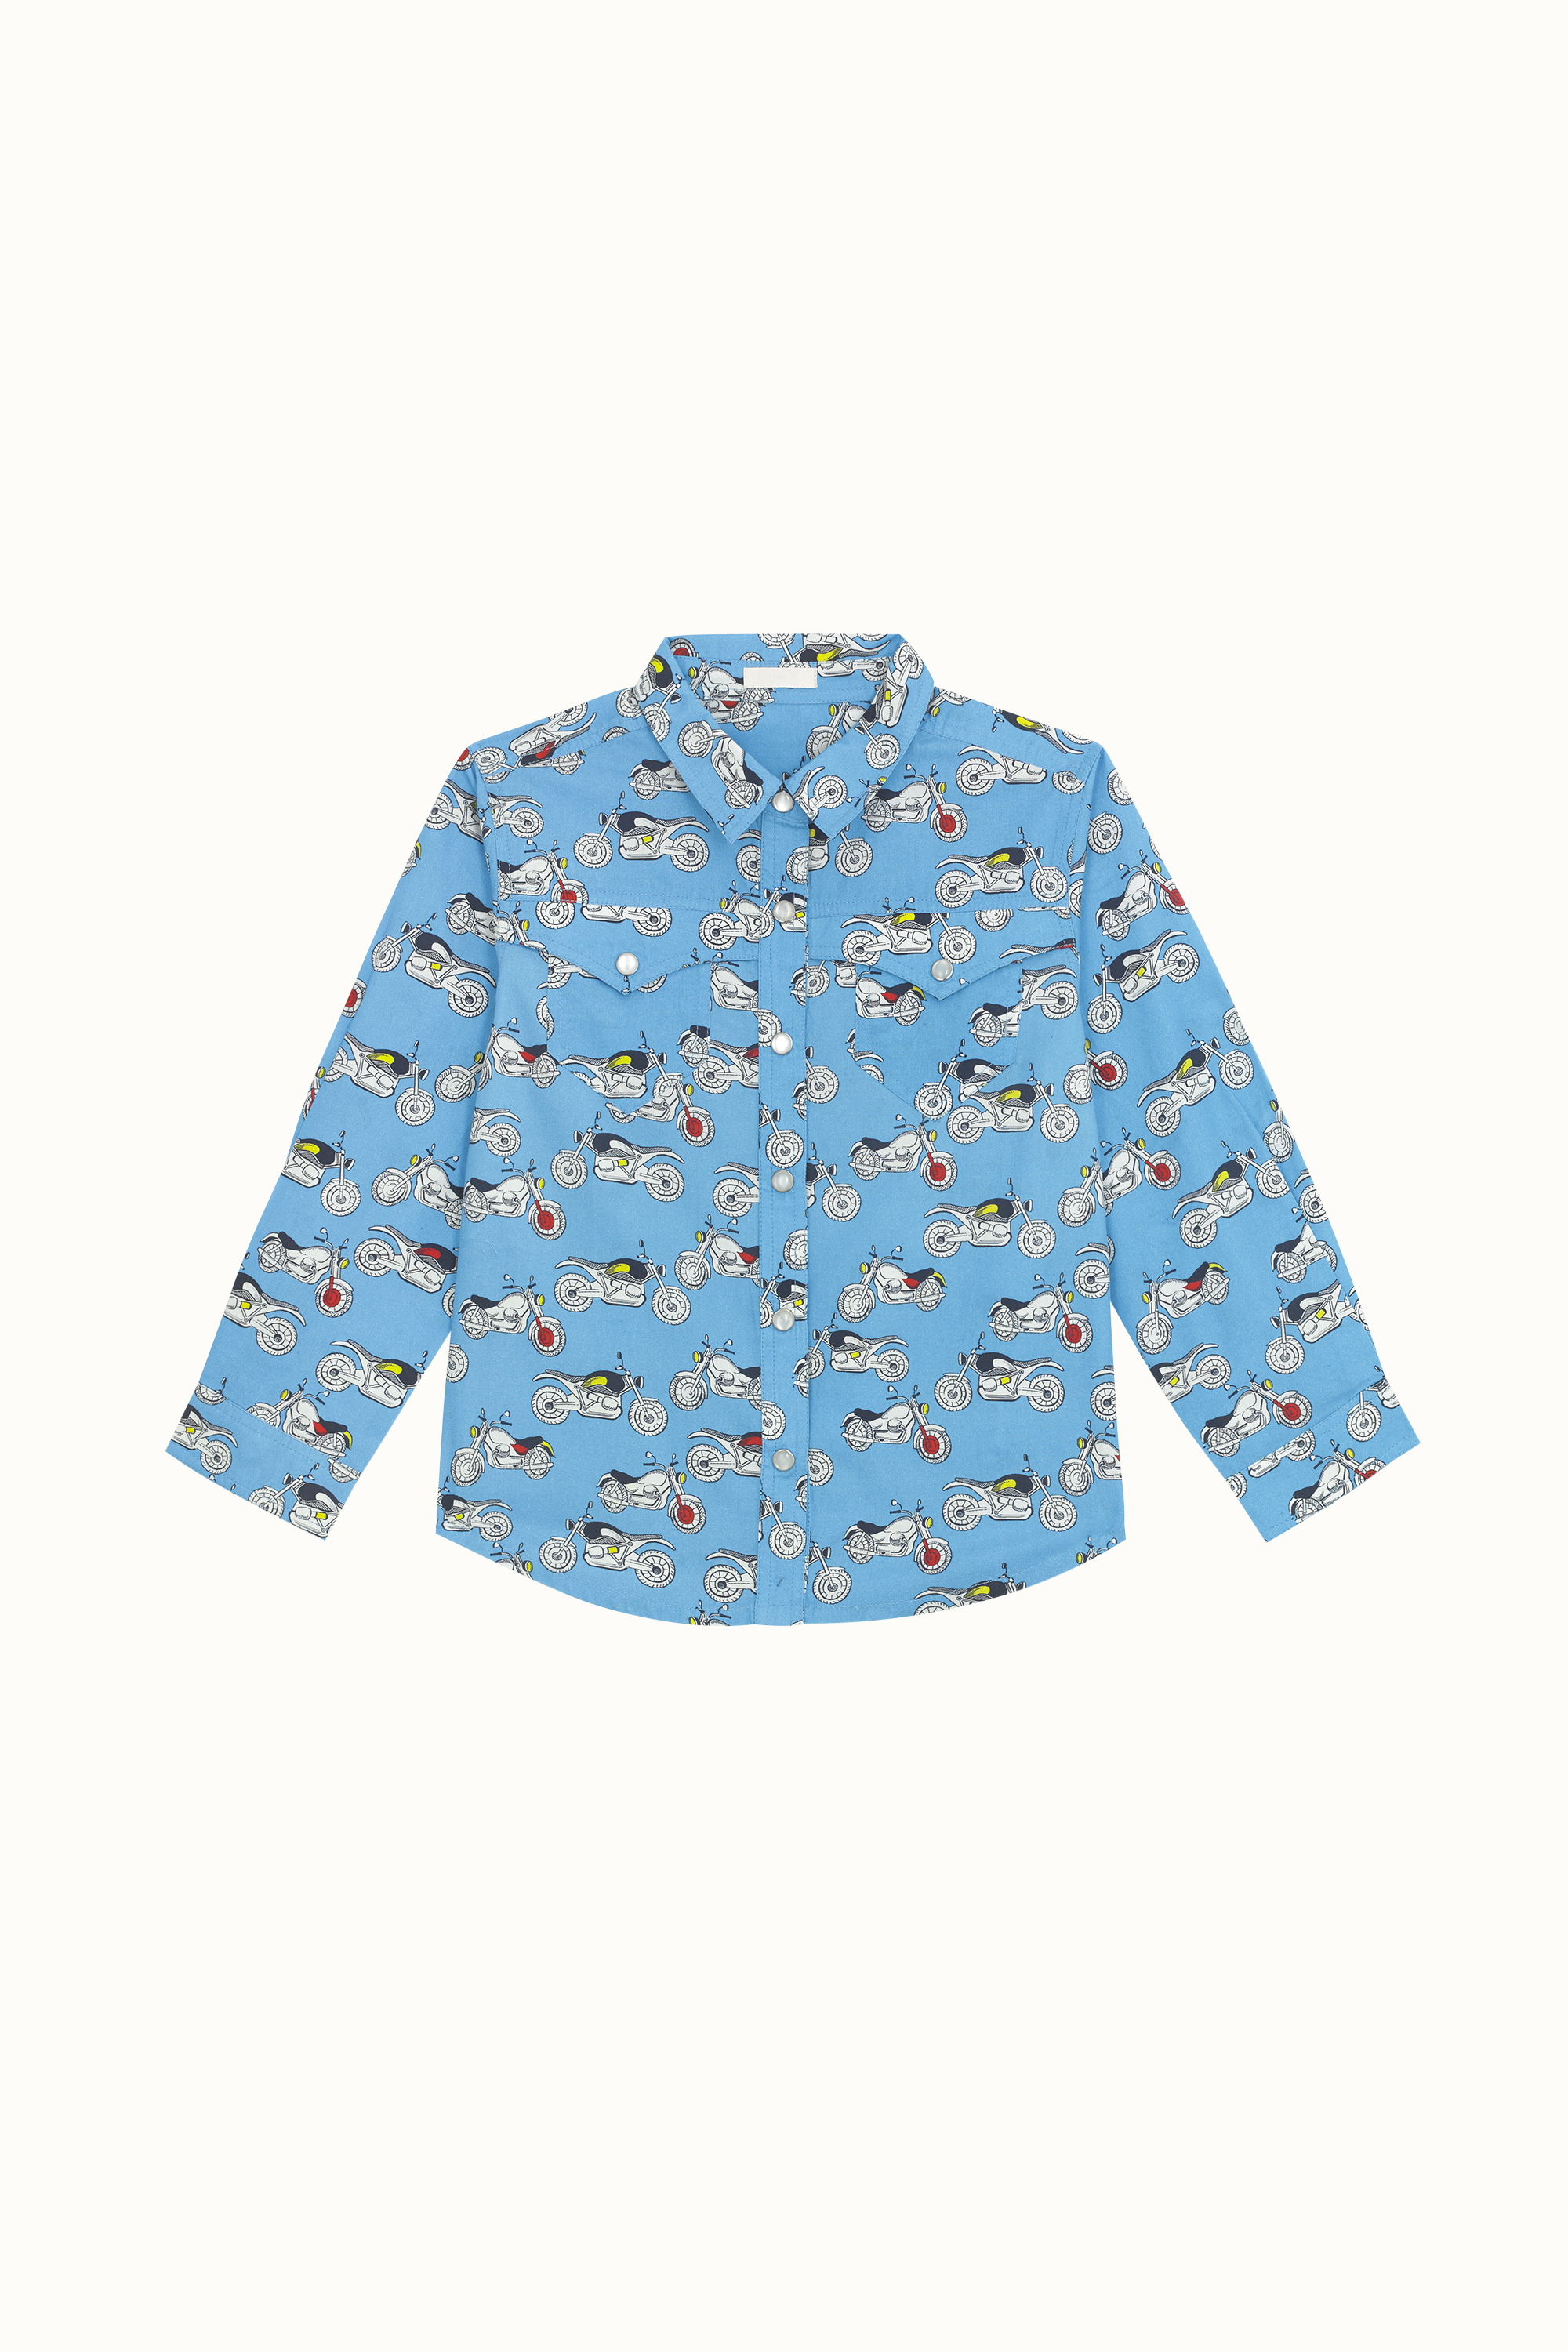 Cath Kidston Fast Bikes Long Sleeve Oliver Shirt in Blue, 7-8 yr